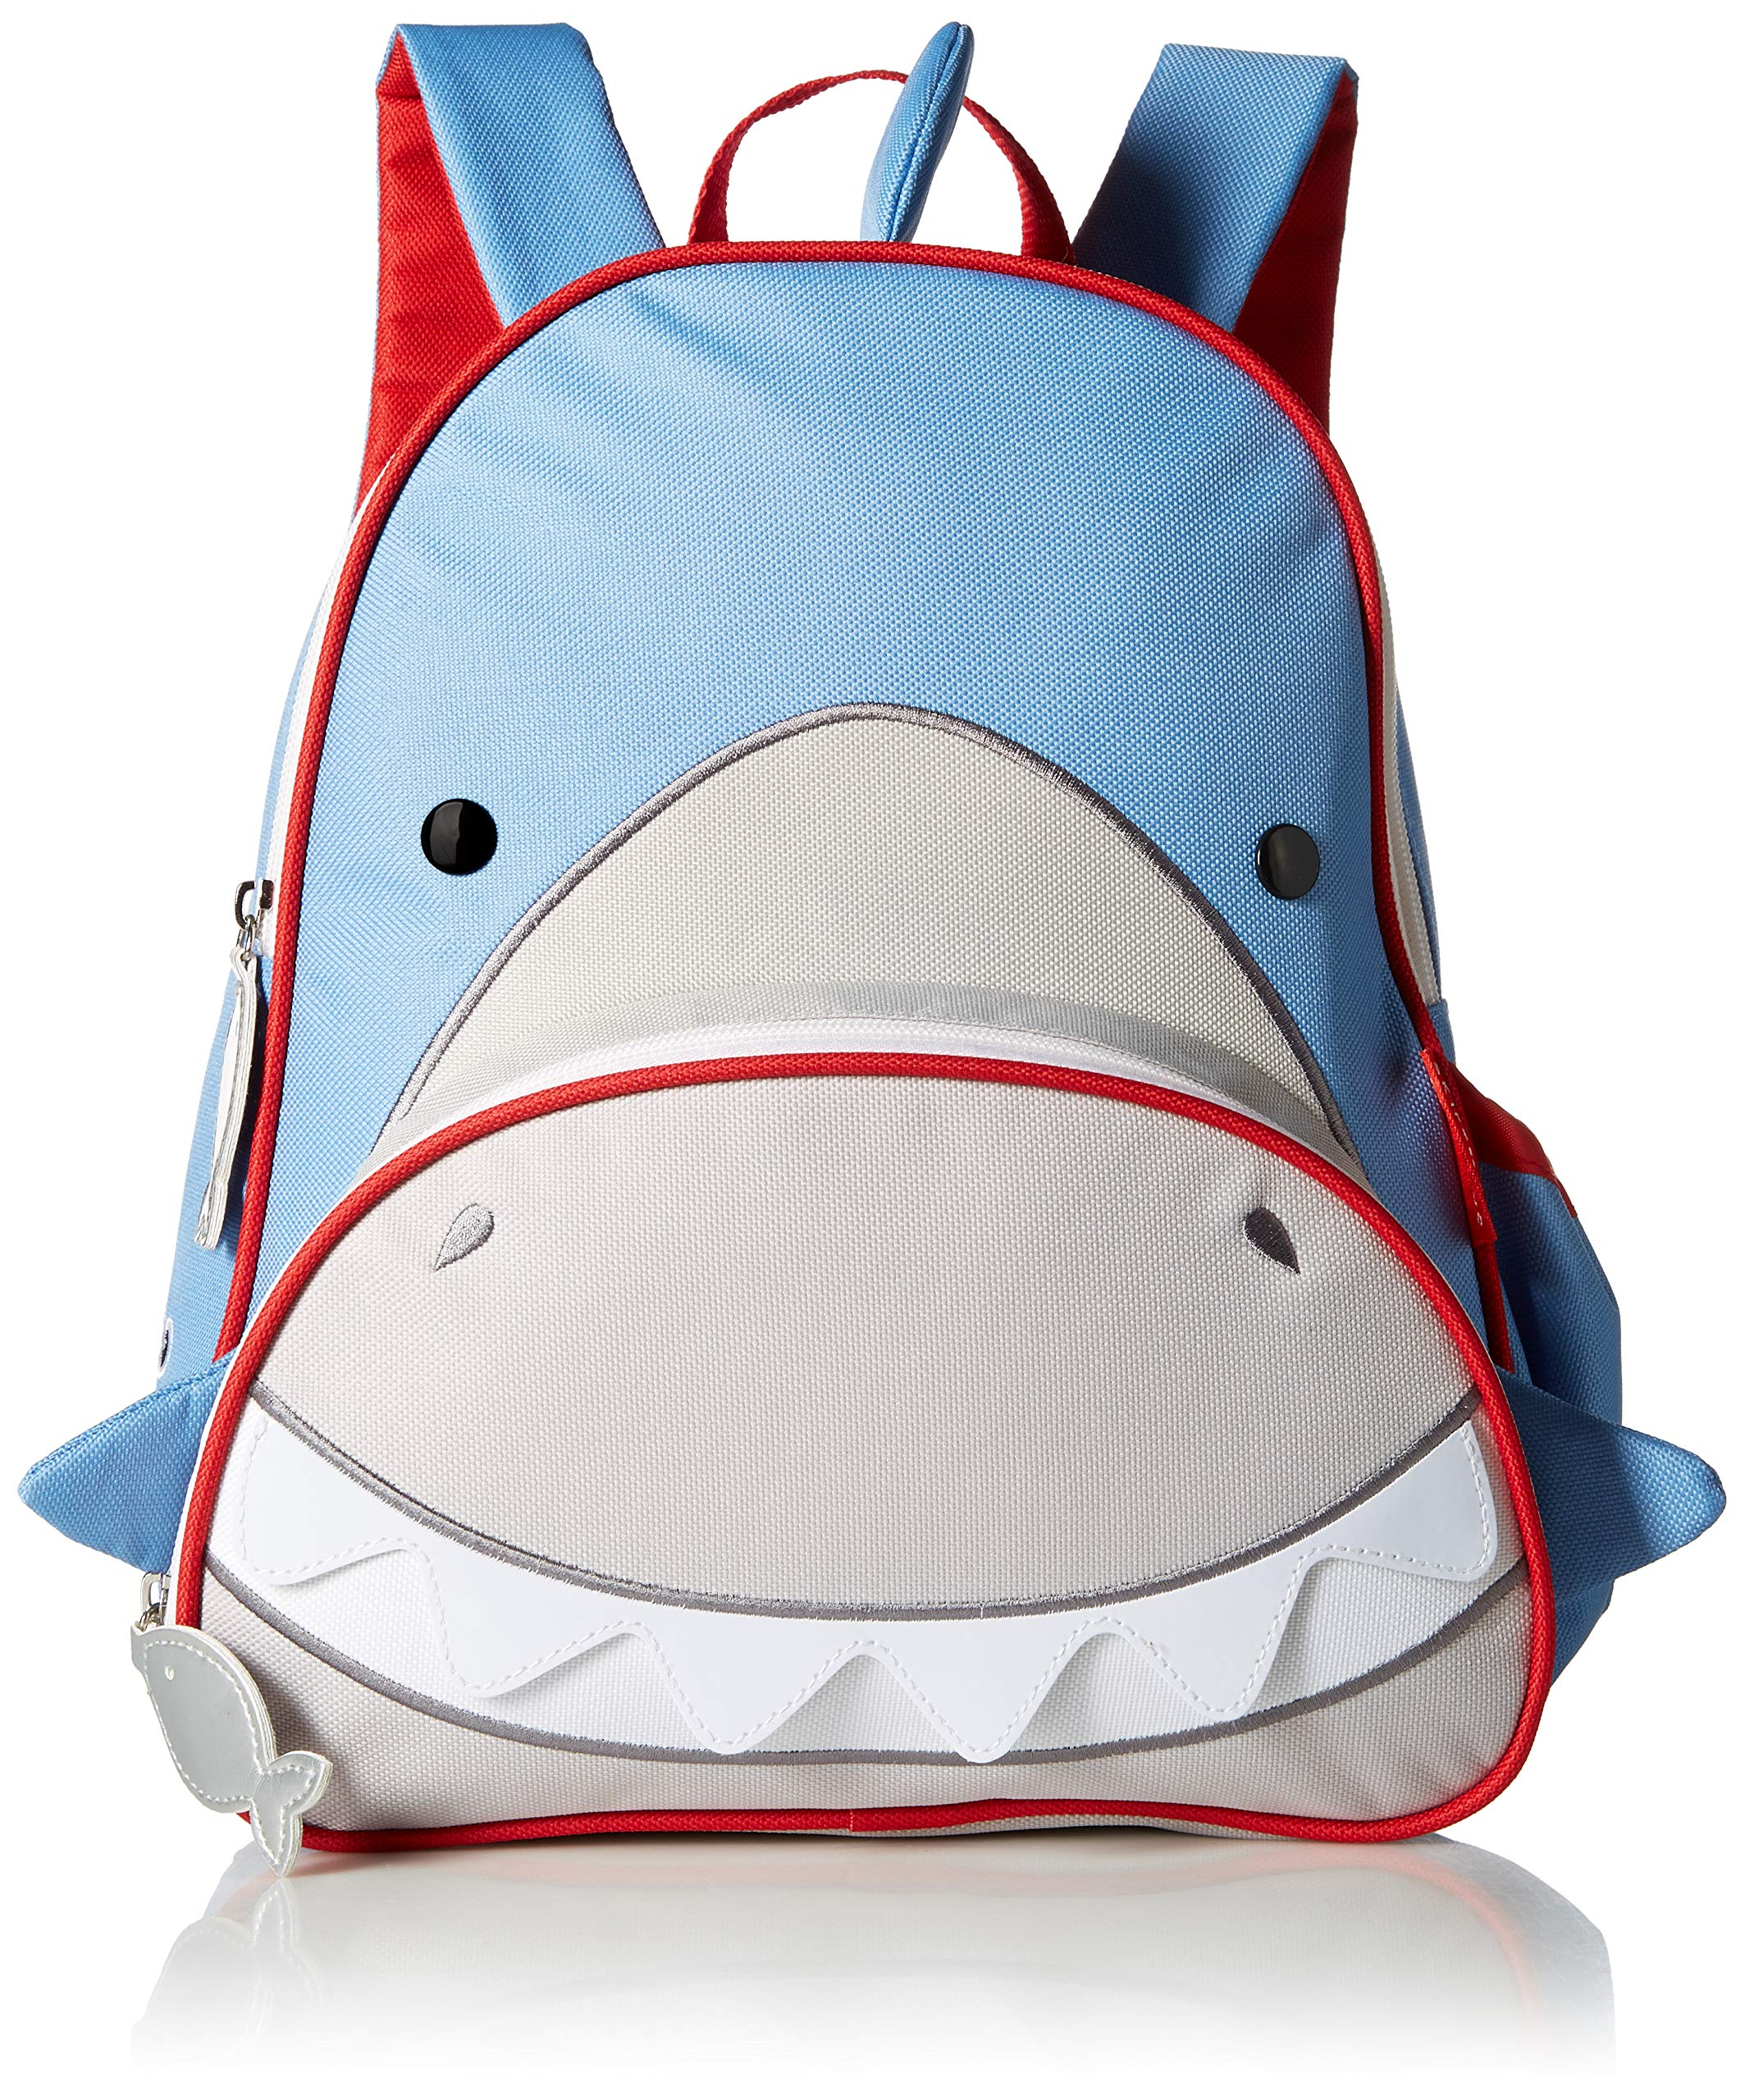 스킵합 상어 책가방, 12인치 Skip Hop Toddler Backpack, 12 Shark School Bag, Multi